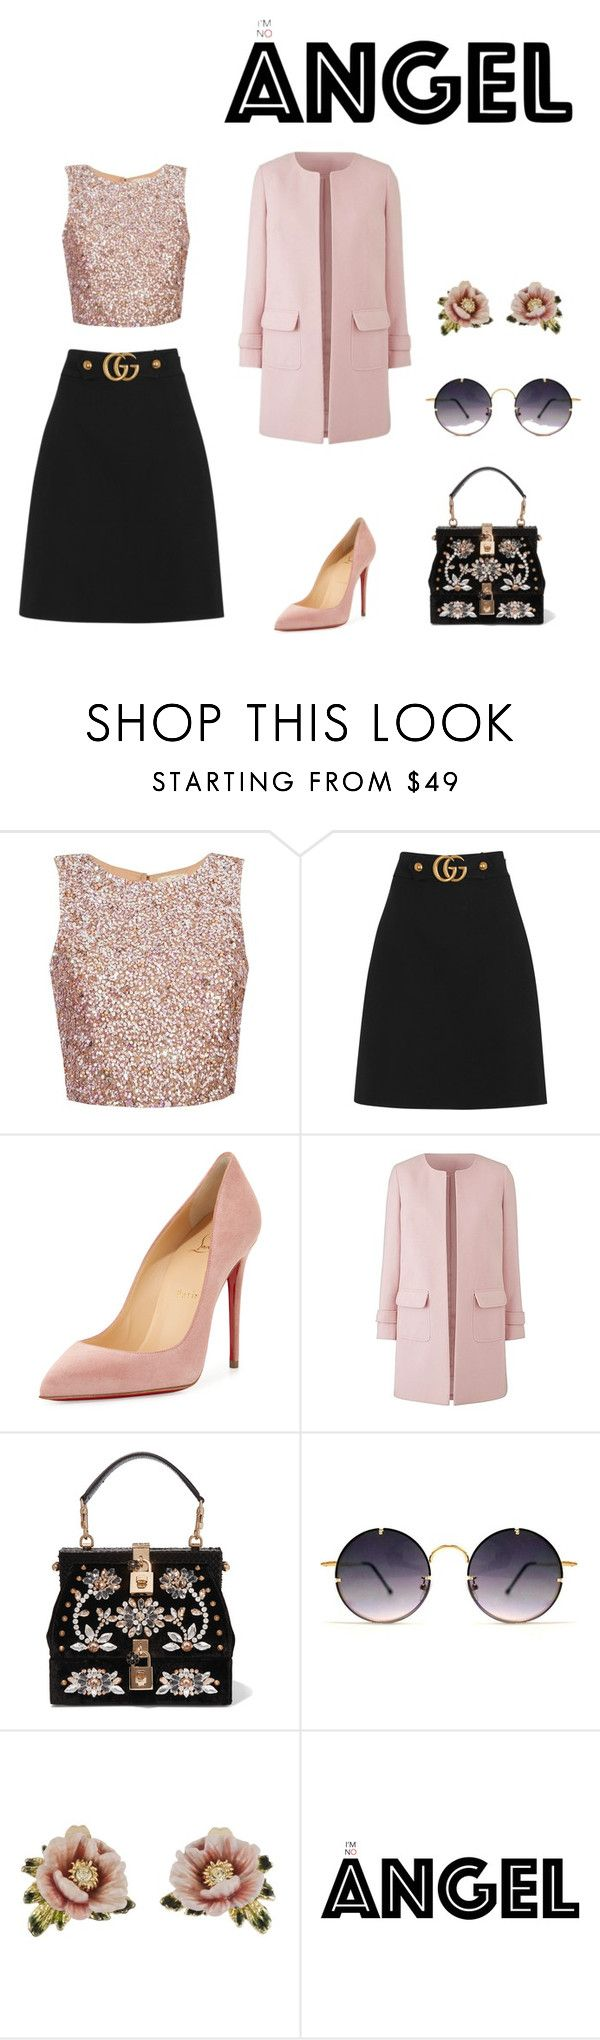 """""""Darice."""" by natt07 ❤ liked on Polyvore featuring Gucci, Christian Louboutin, Dolce&Gabbana, Spitfire and Les Néréides"""